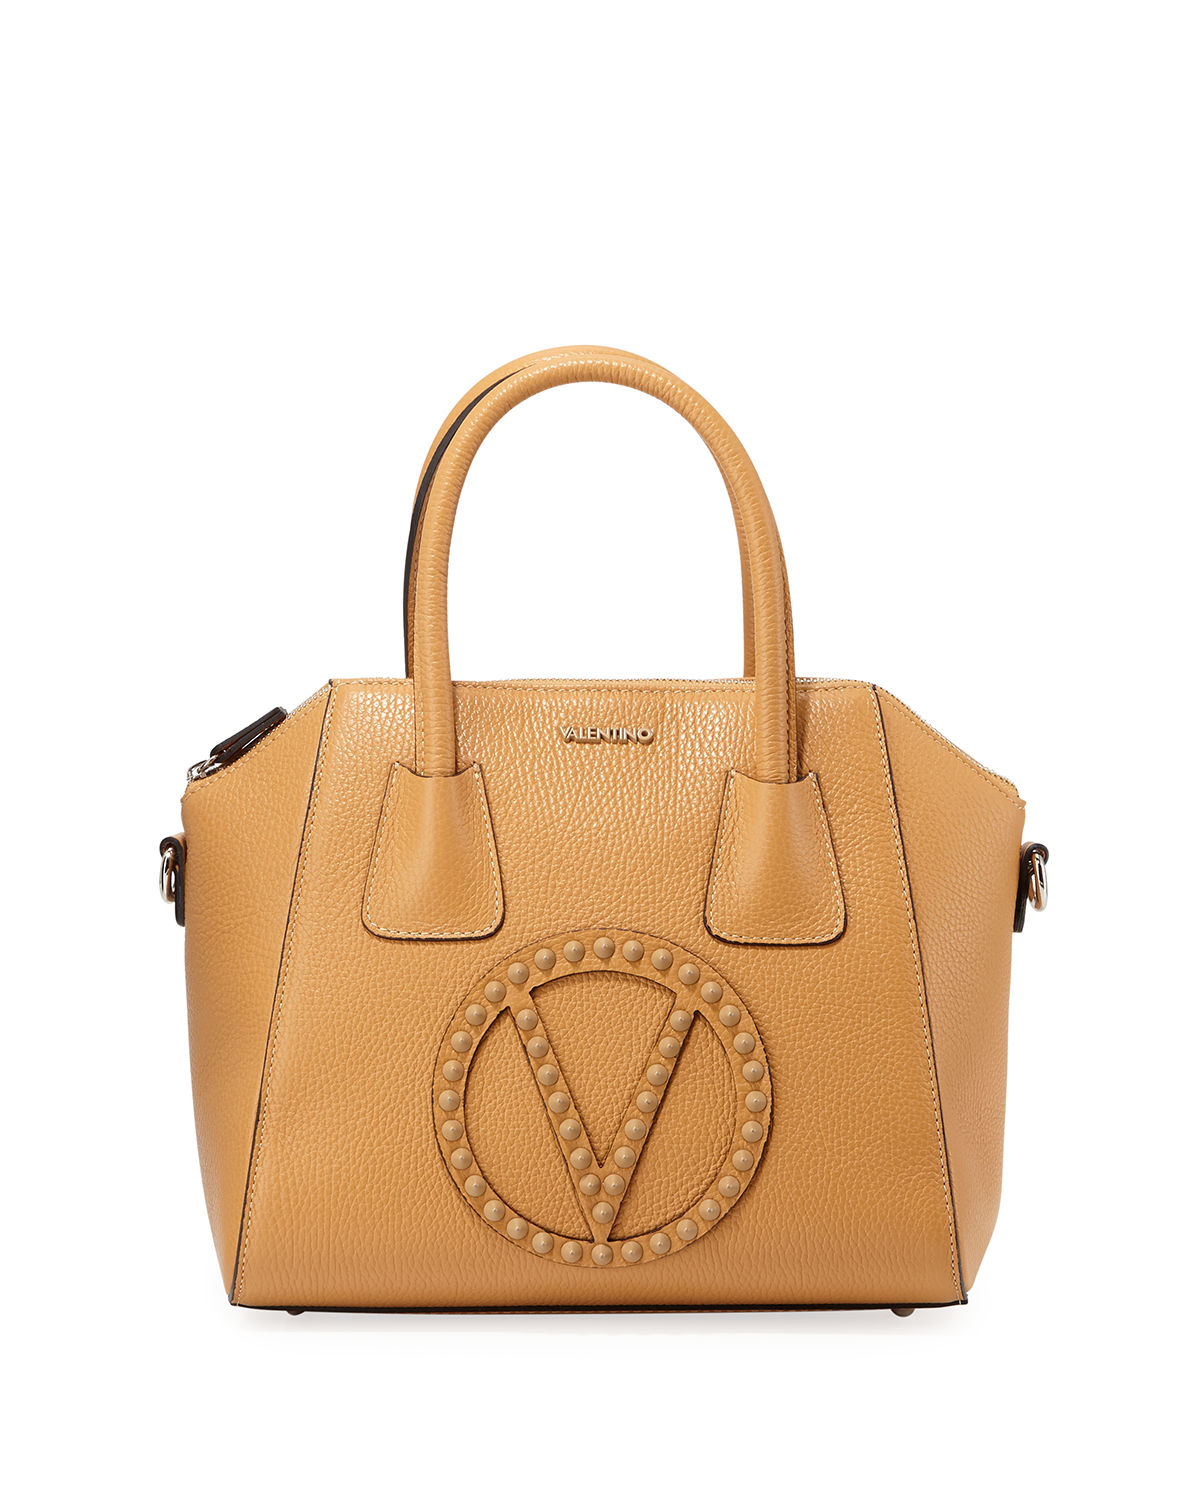 Valentino By Mario Valentino Bags MINIMI ROCK DOLLARO STUDS LEATHER SATCHEL BAG